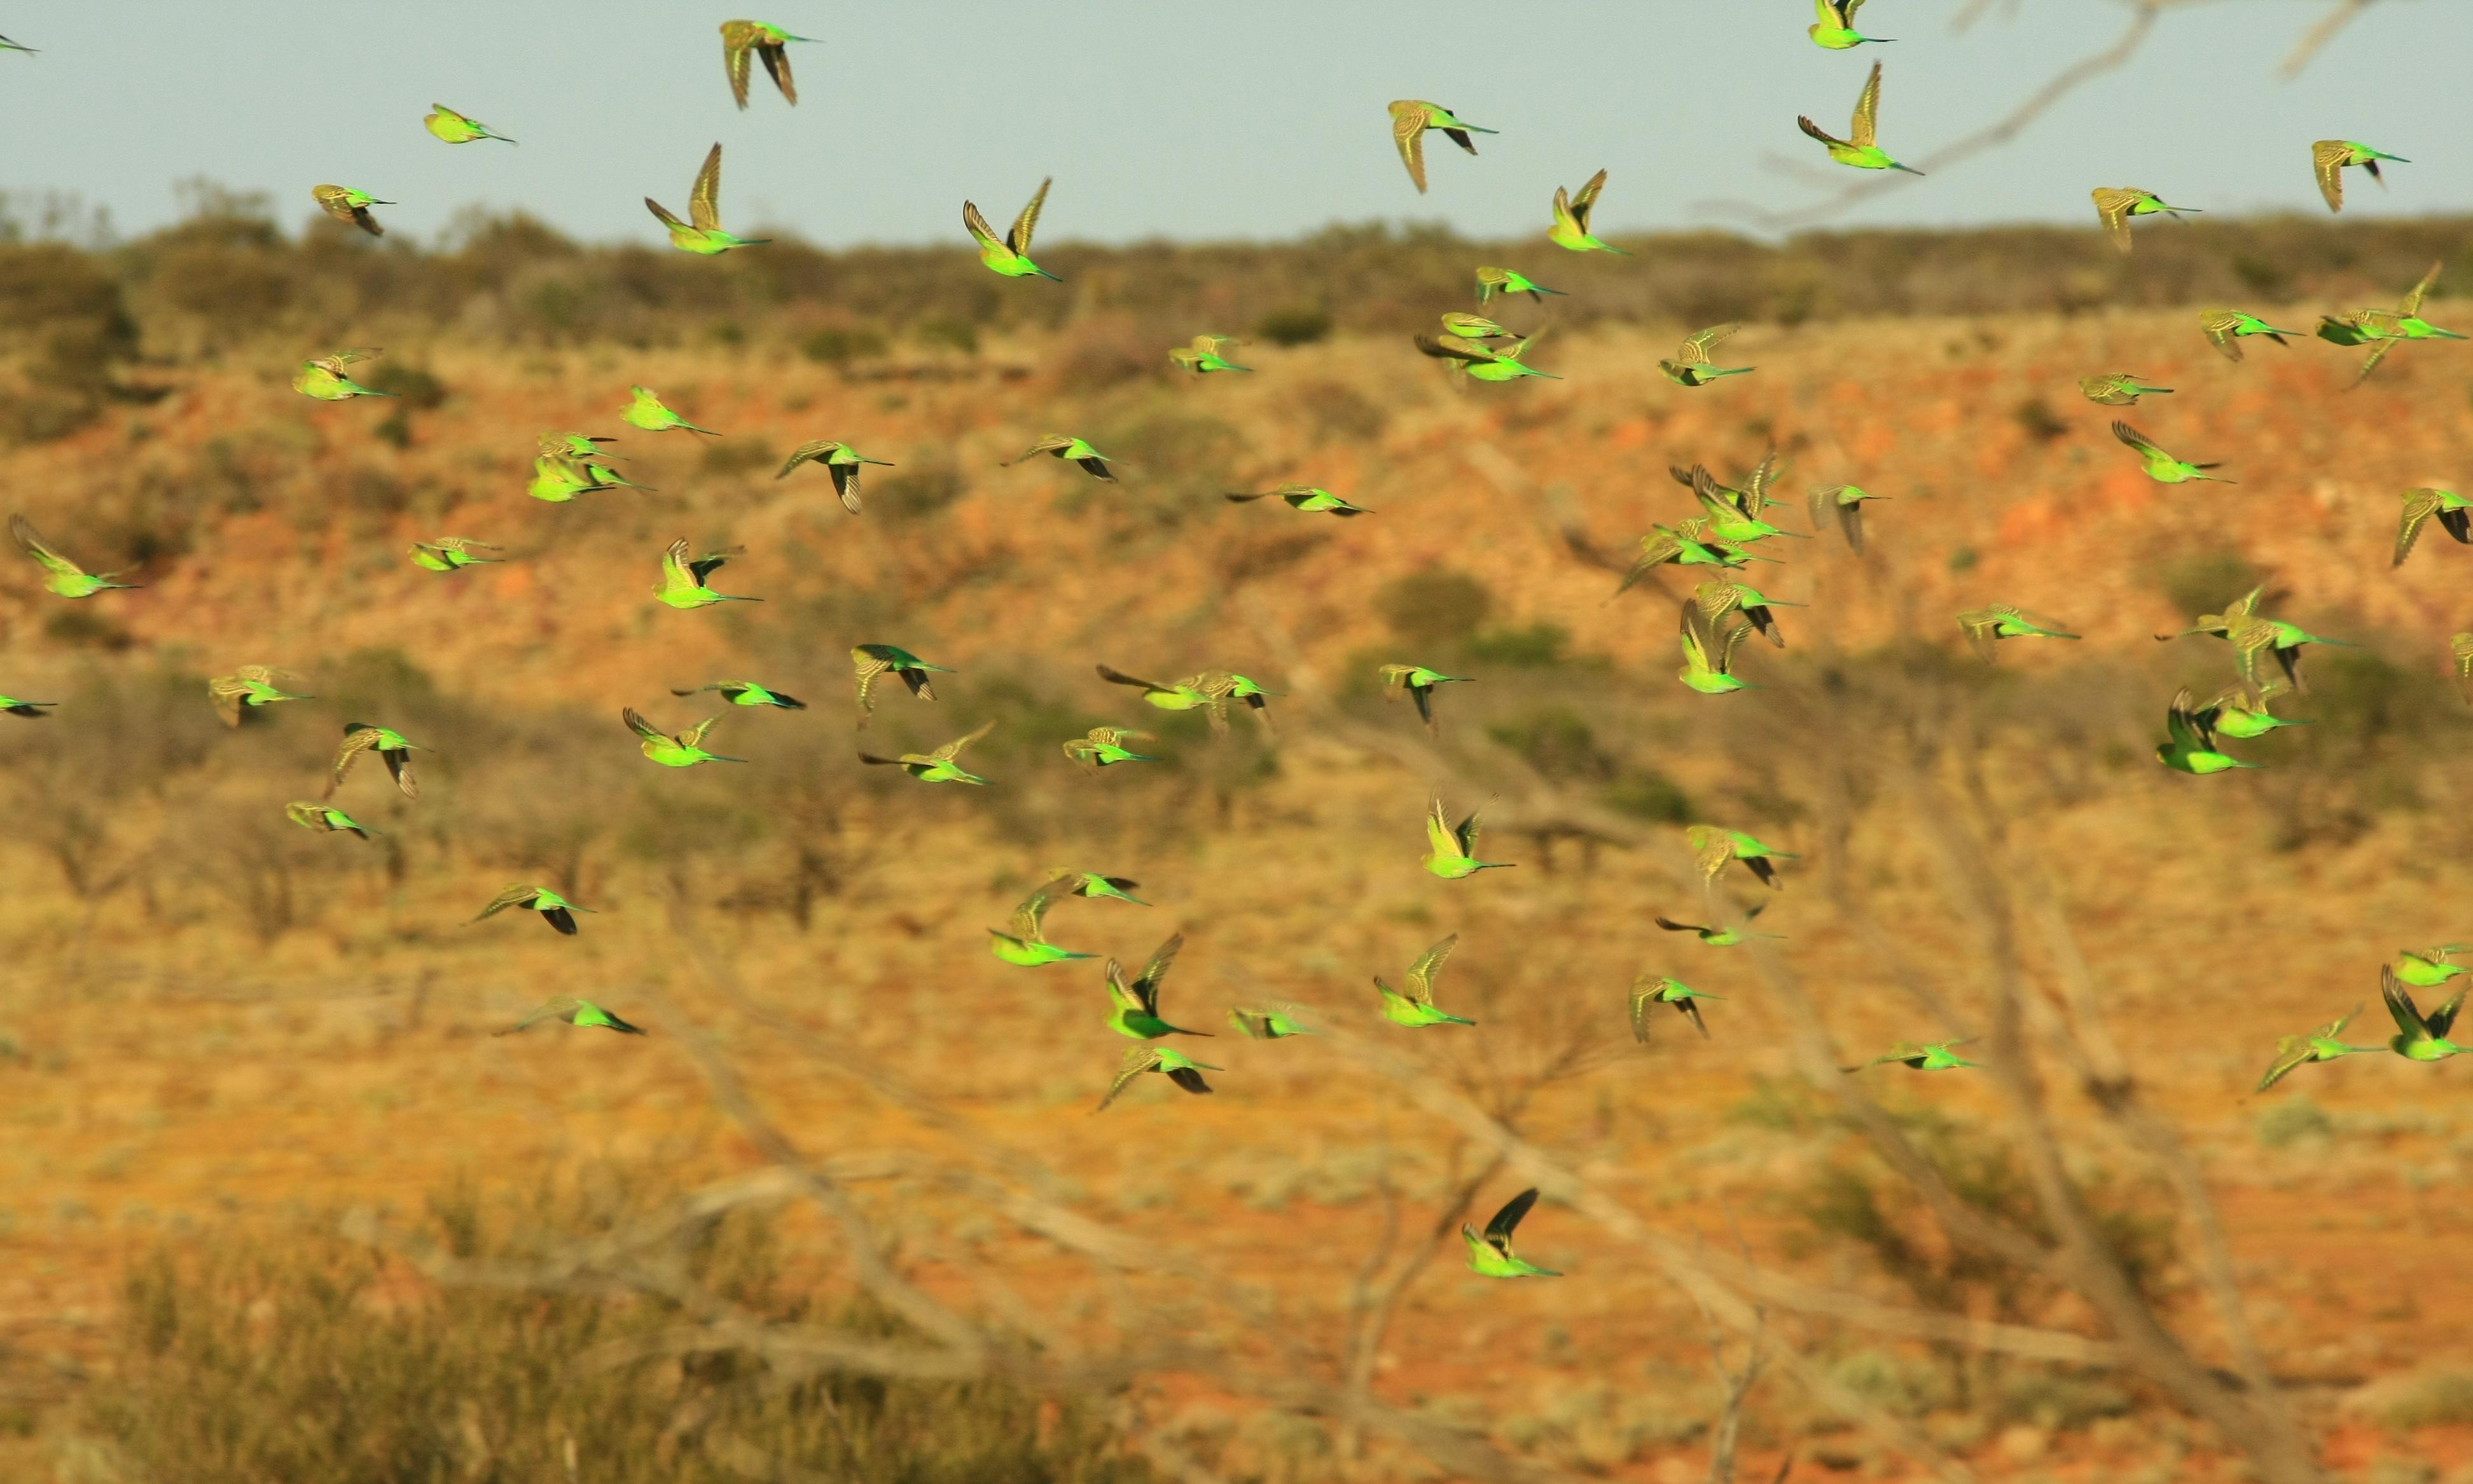 Flying green gems of the outback: budgies are Australia's most misunderstood birds